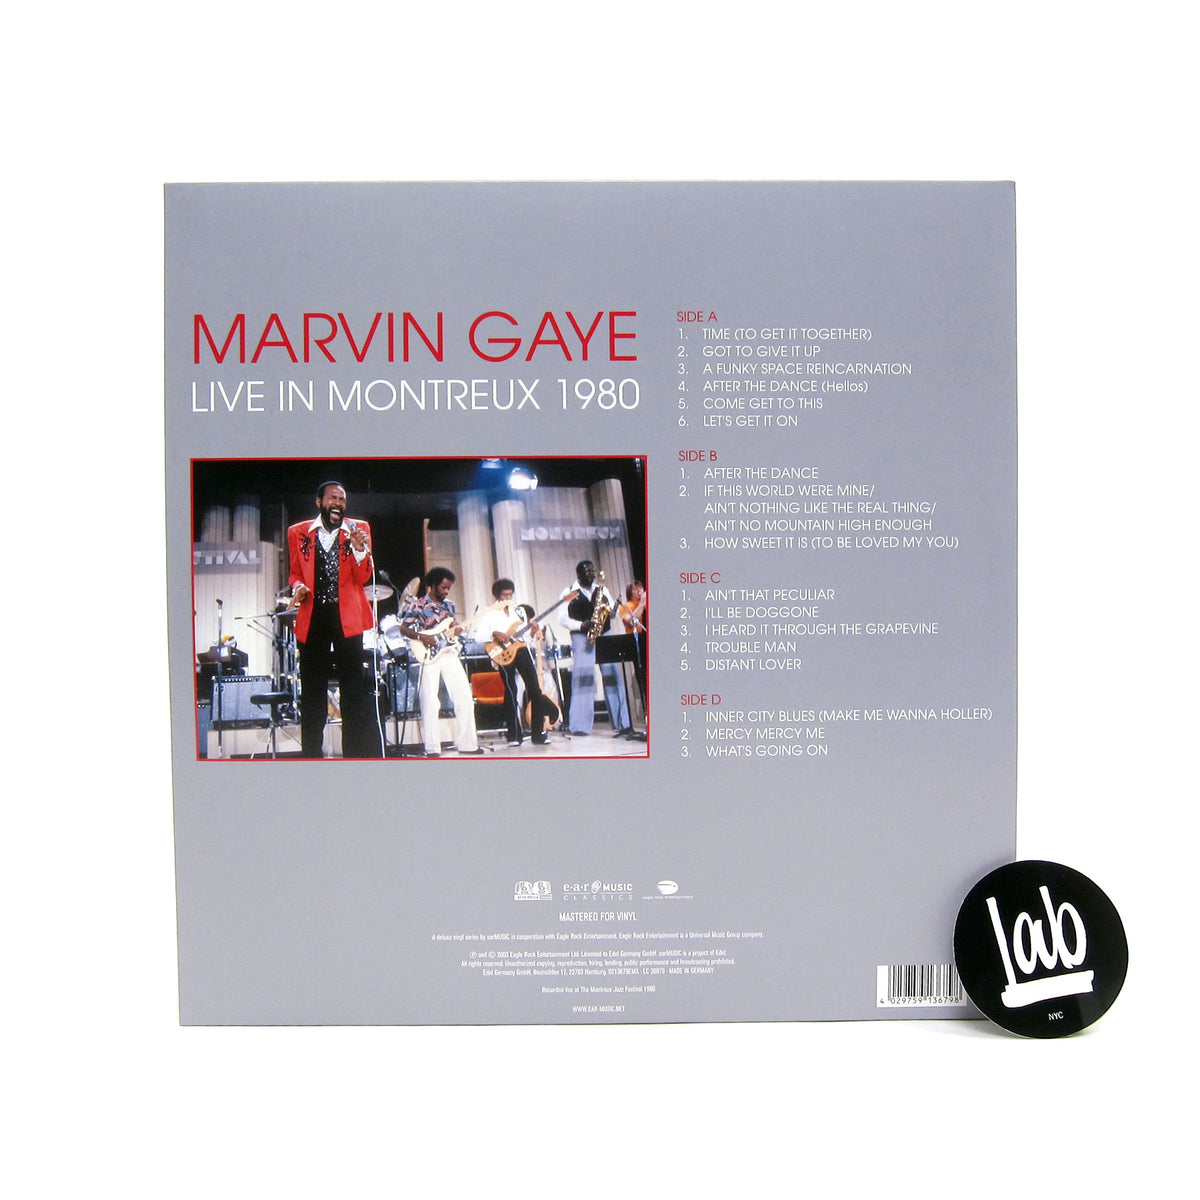 Marvin Gaye: Live At Montreux 1980 Vinyl